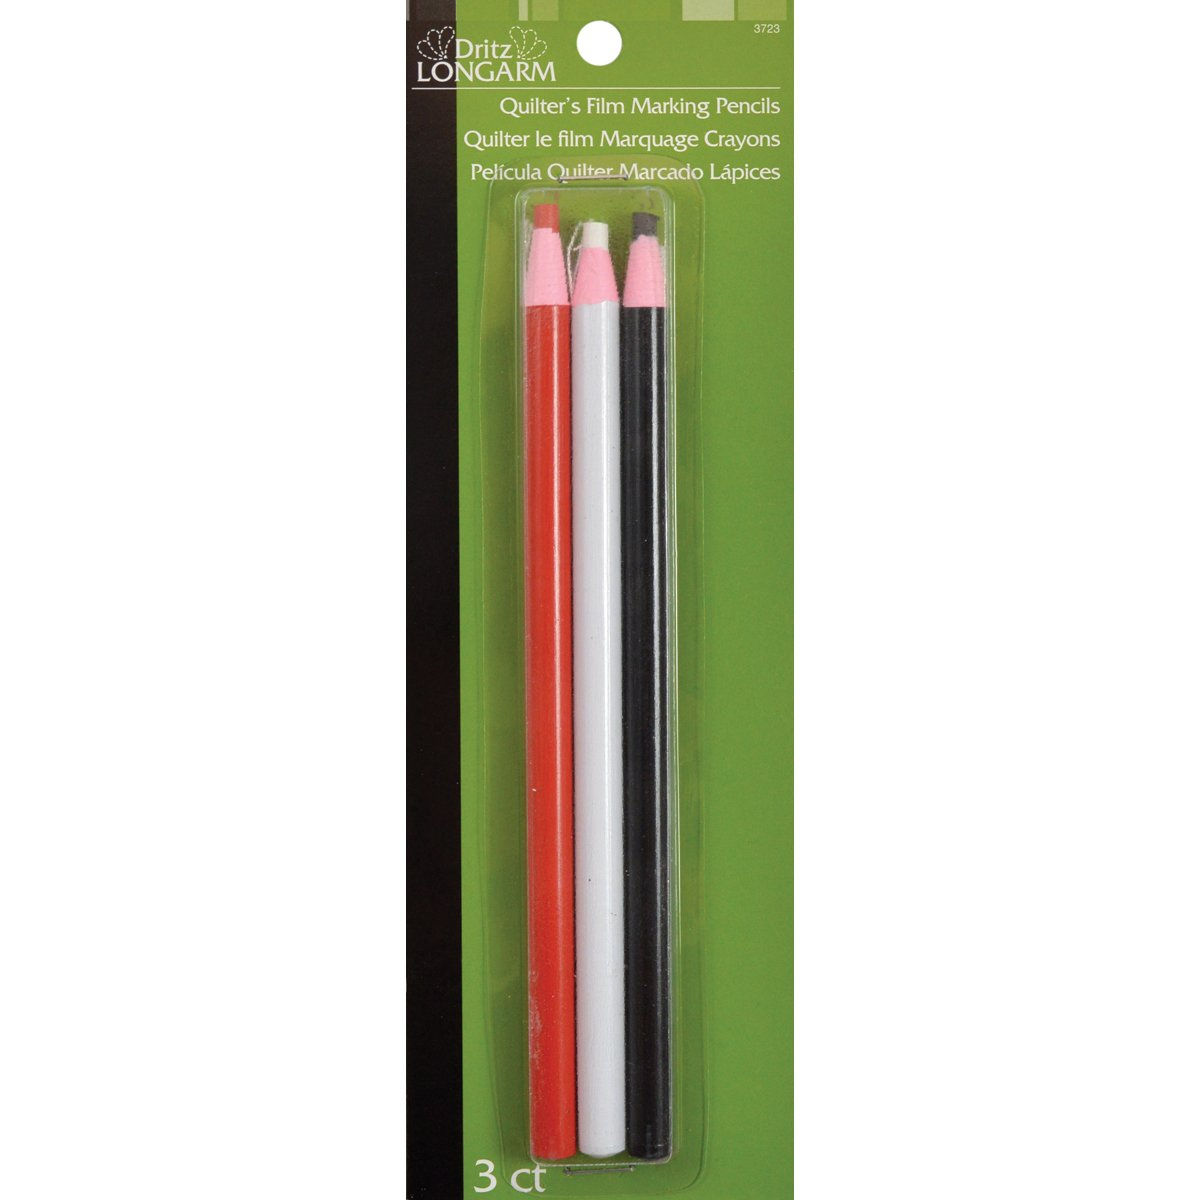 Dritz Longarm Quilter's Film Marking Pencils, 3-Pack, White/Black 3723